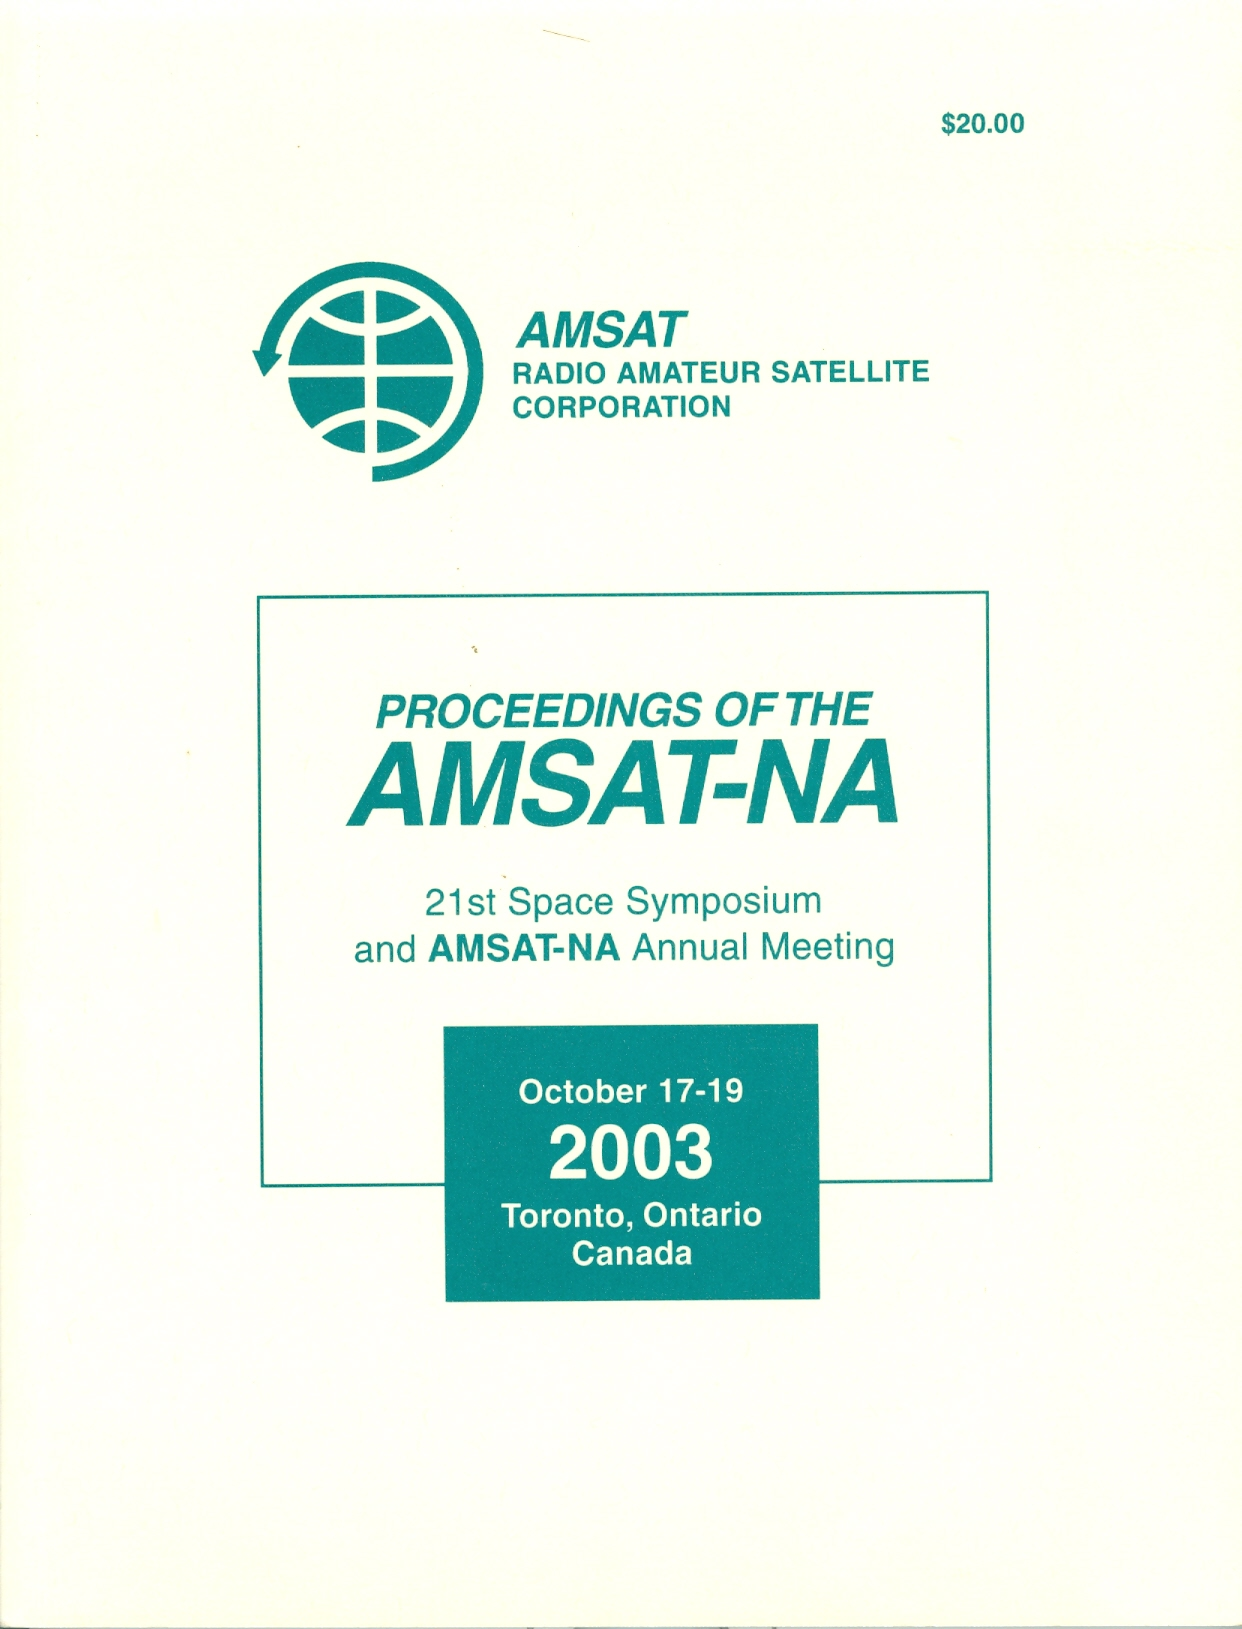 Proceedings of the AMSAT-NA 21st Space Symposium and AMSAT-NA Annual Meeting